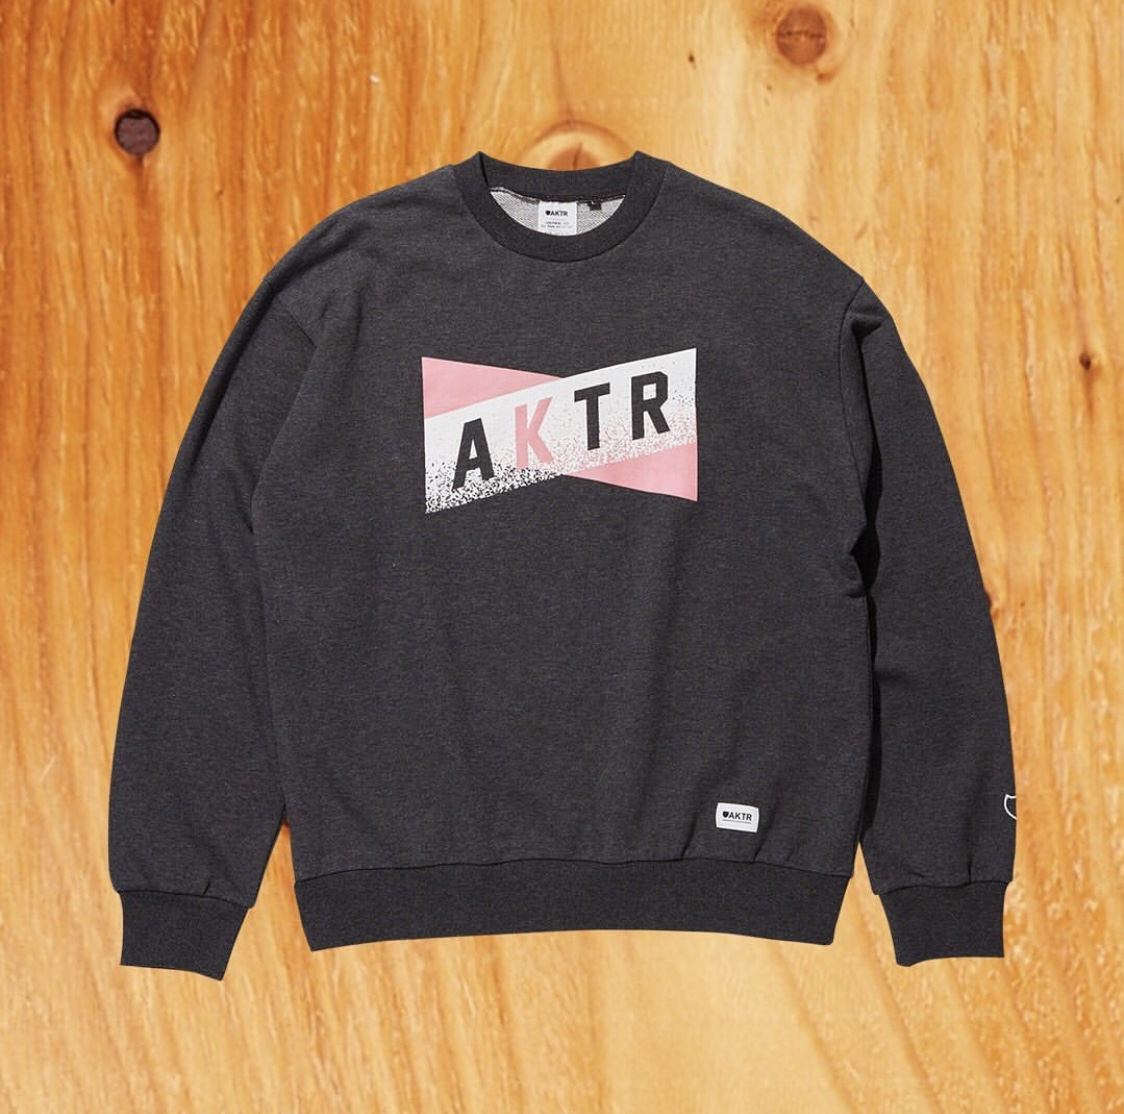 AKTR SWEAT CREW NECK CHARCOALのイメージ